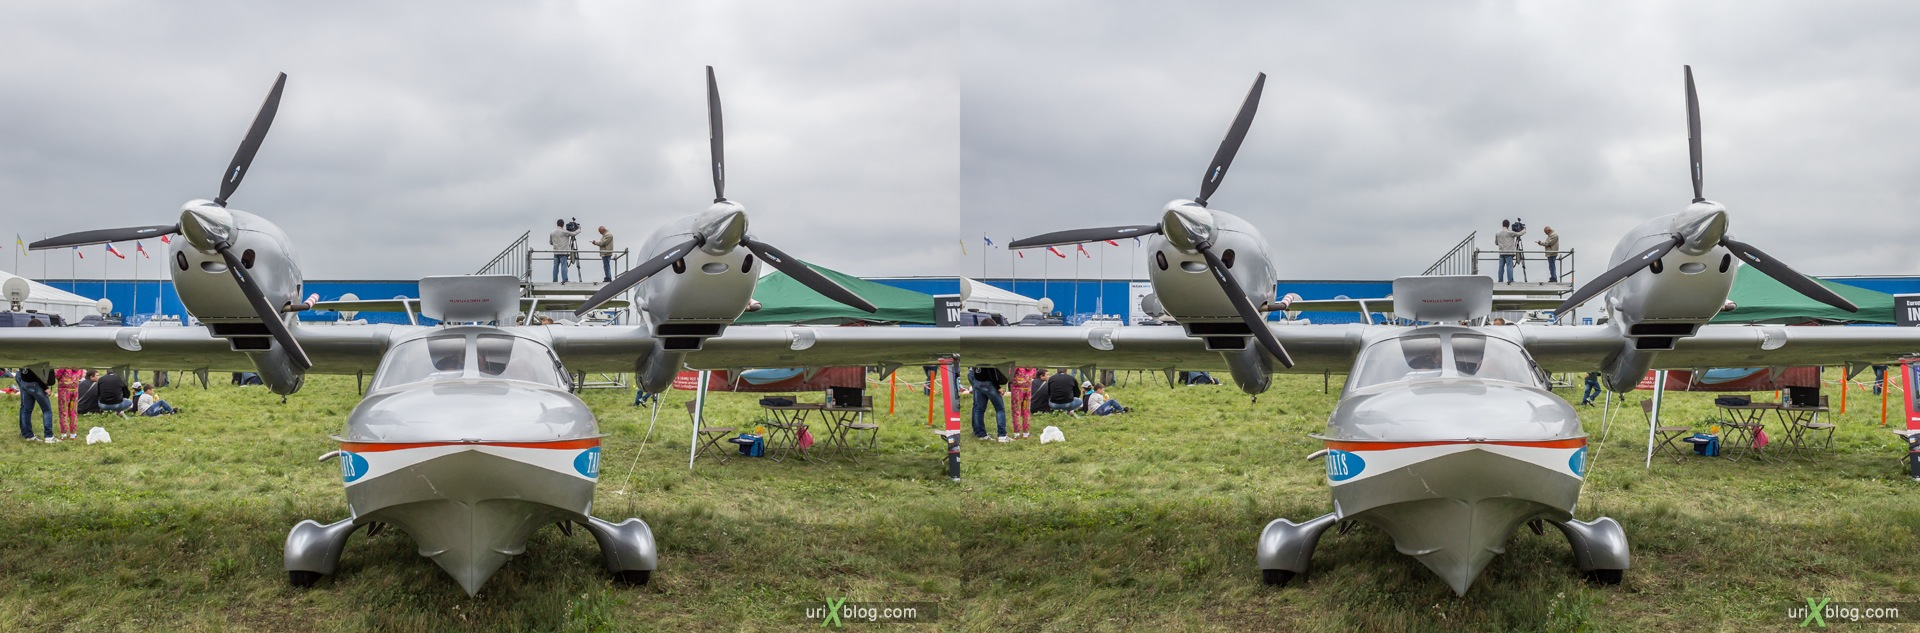 2013, L-44, MAKS, International Aviation and Space Salon, Russia, Ramenskoye airfield, airplane, 3D, stereo pair, cross-eyed, crossview, cross view stereo pair, stereoscopic